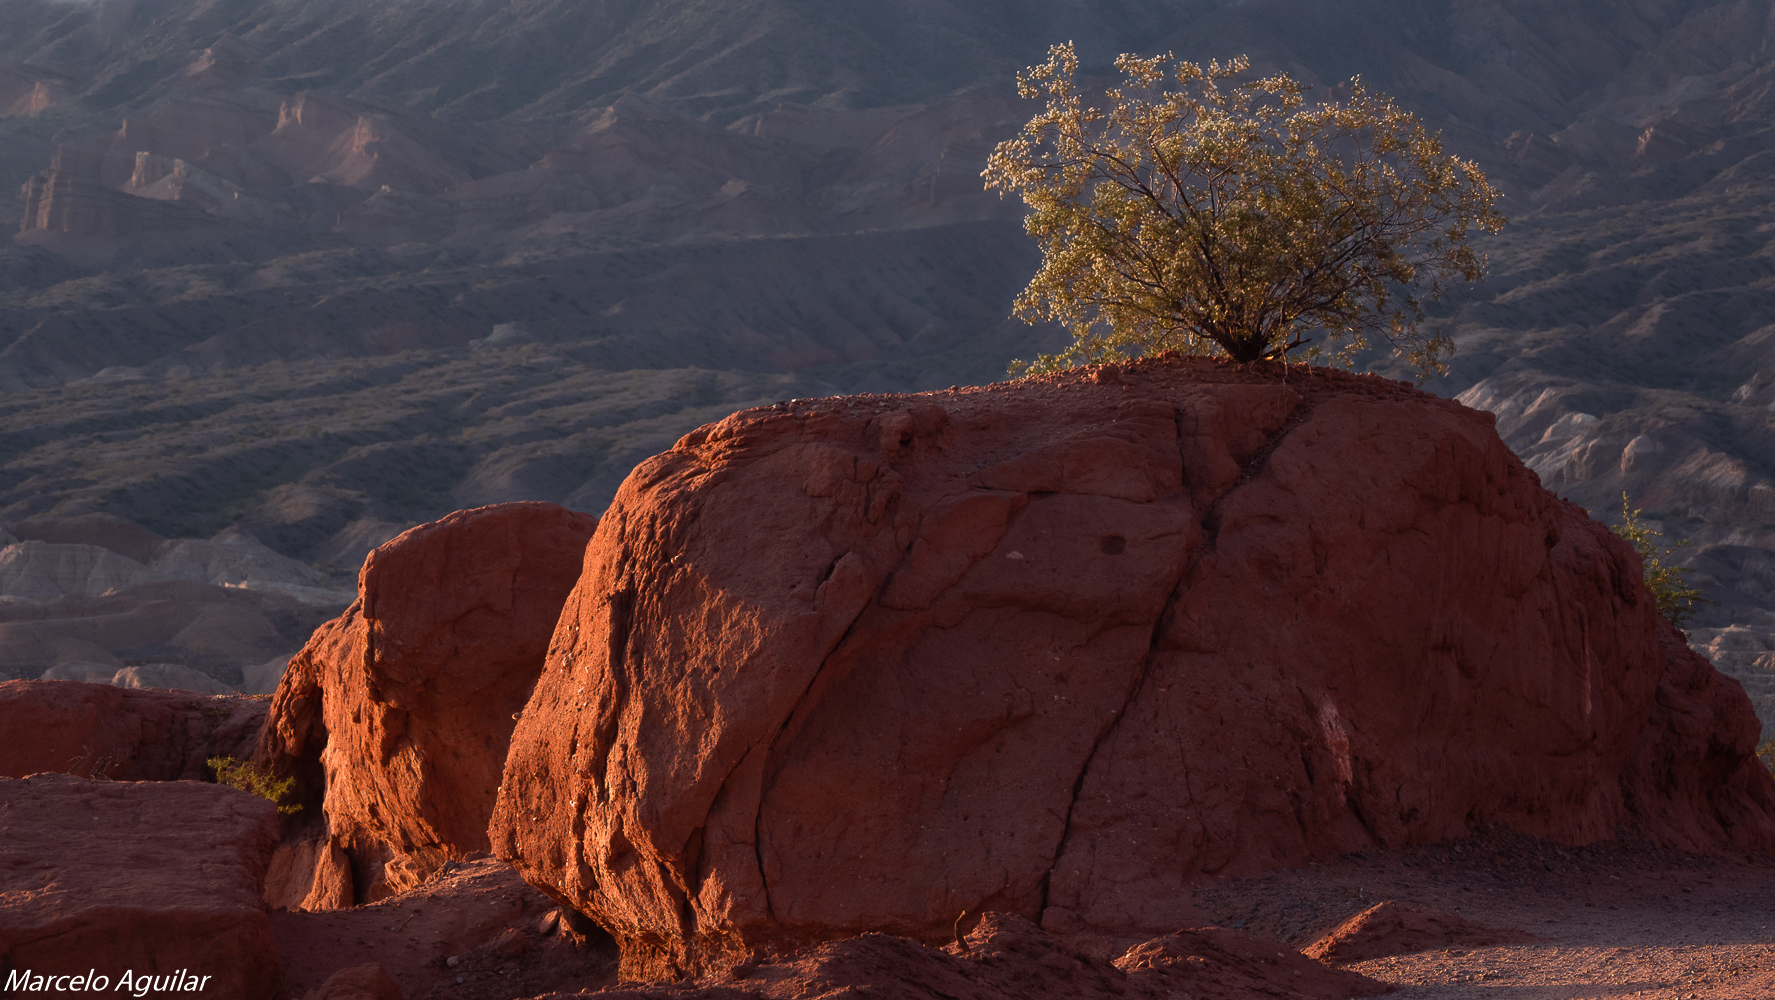 Rock and tree in las conchas, Argentina